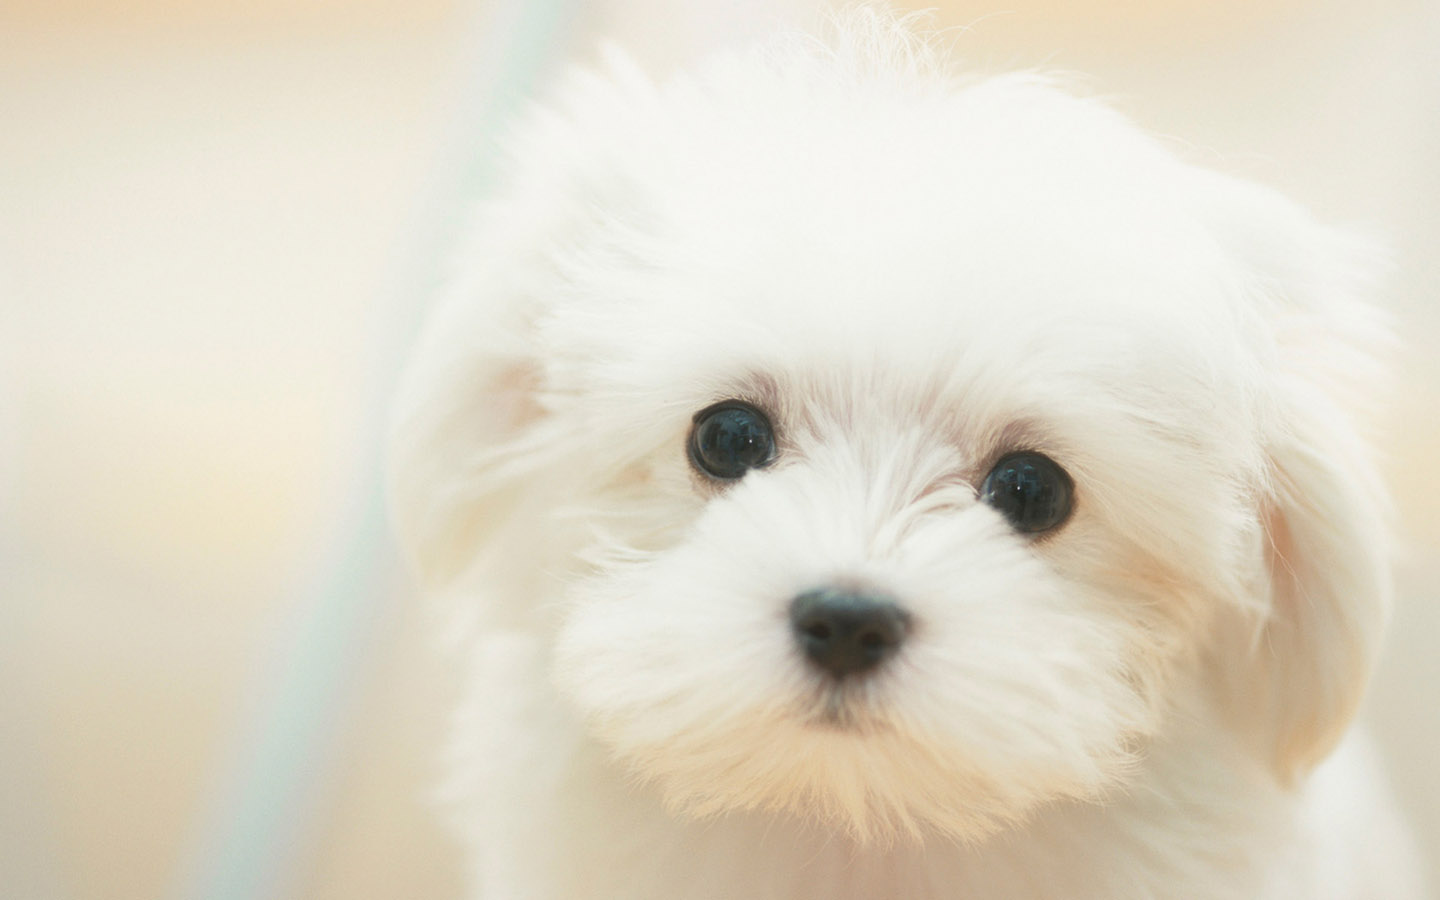 Free Download Cute White Puppies Dogs Hd Wallpaper 478 Wallpaper High Resolution 1440x900 For Your Desktop Mobile Tablet Explore 74 Cute Puppies Wallpaper Cute Animal Wallpaper Christmas Puppies Wallpaper Free Puppy Wallpapers